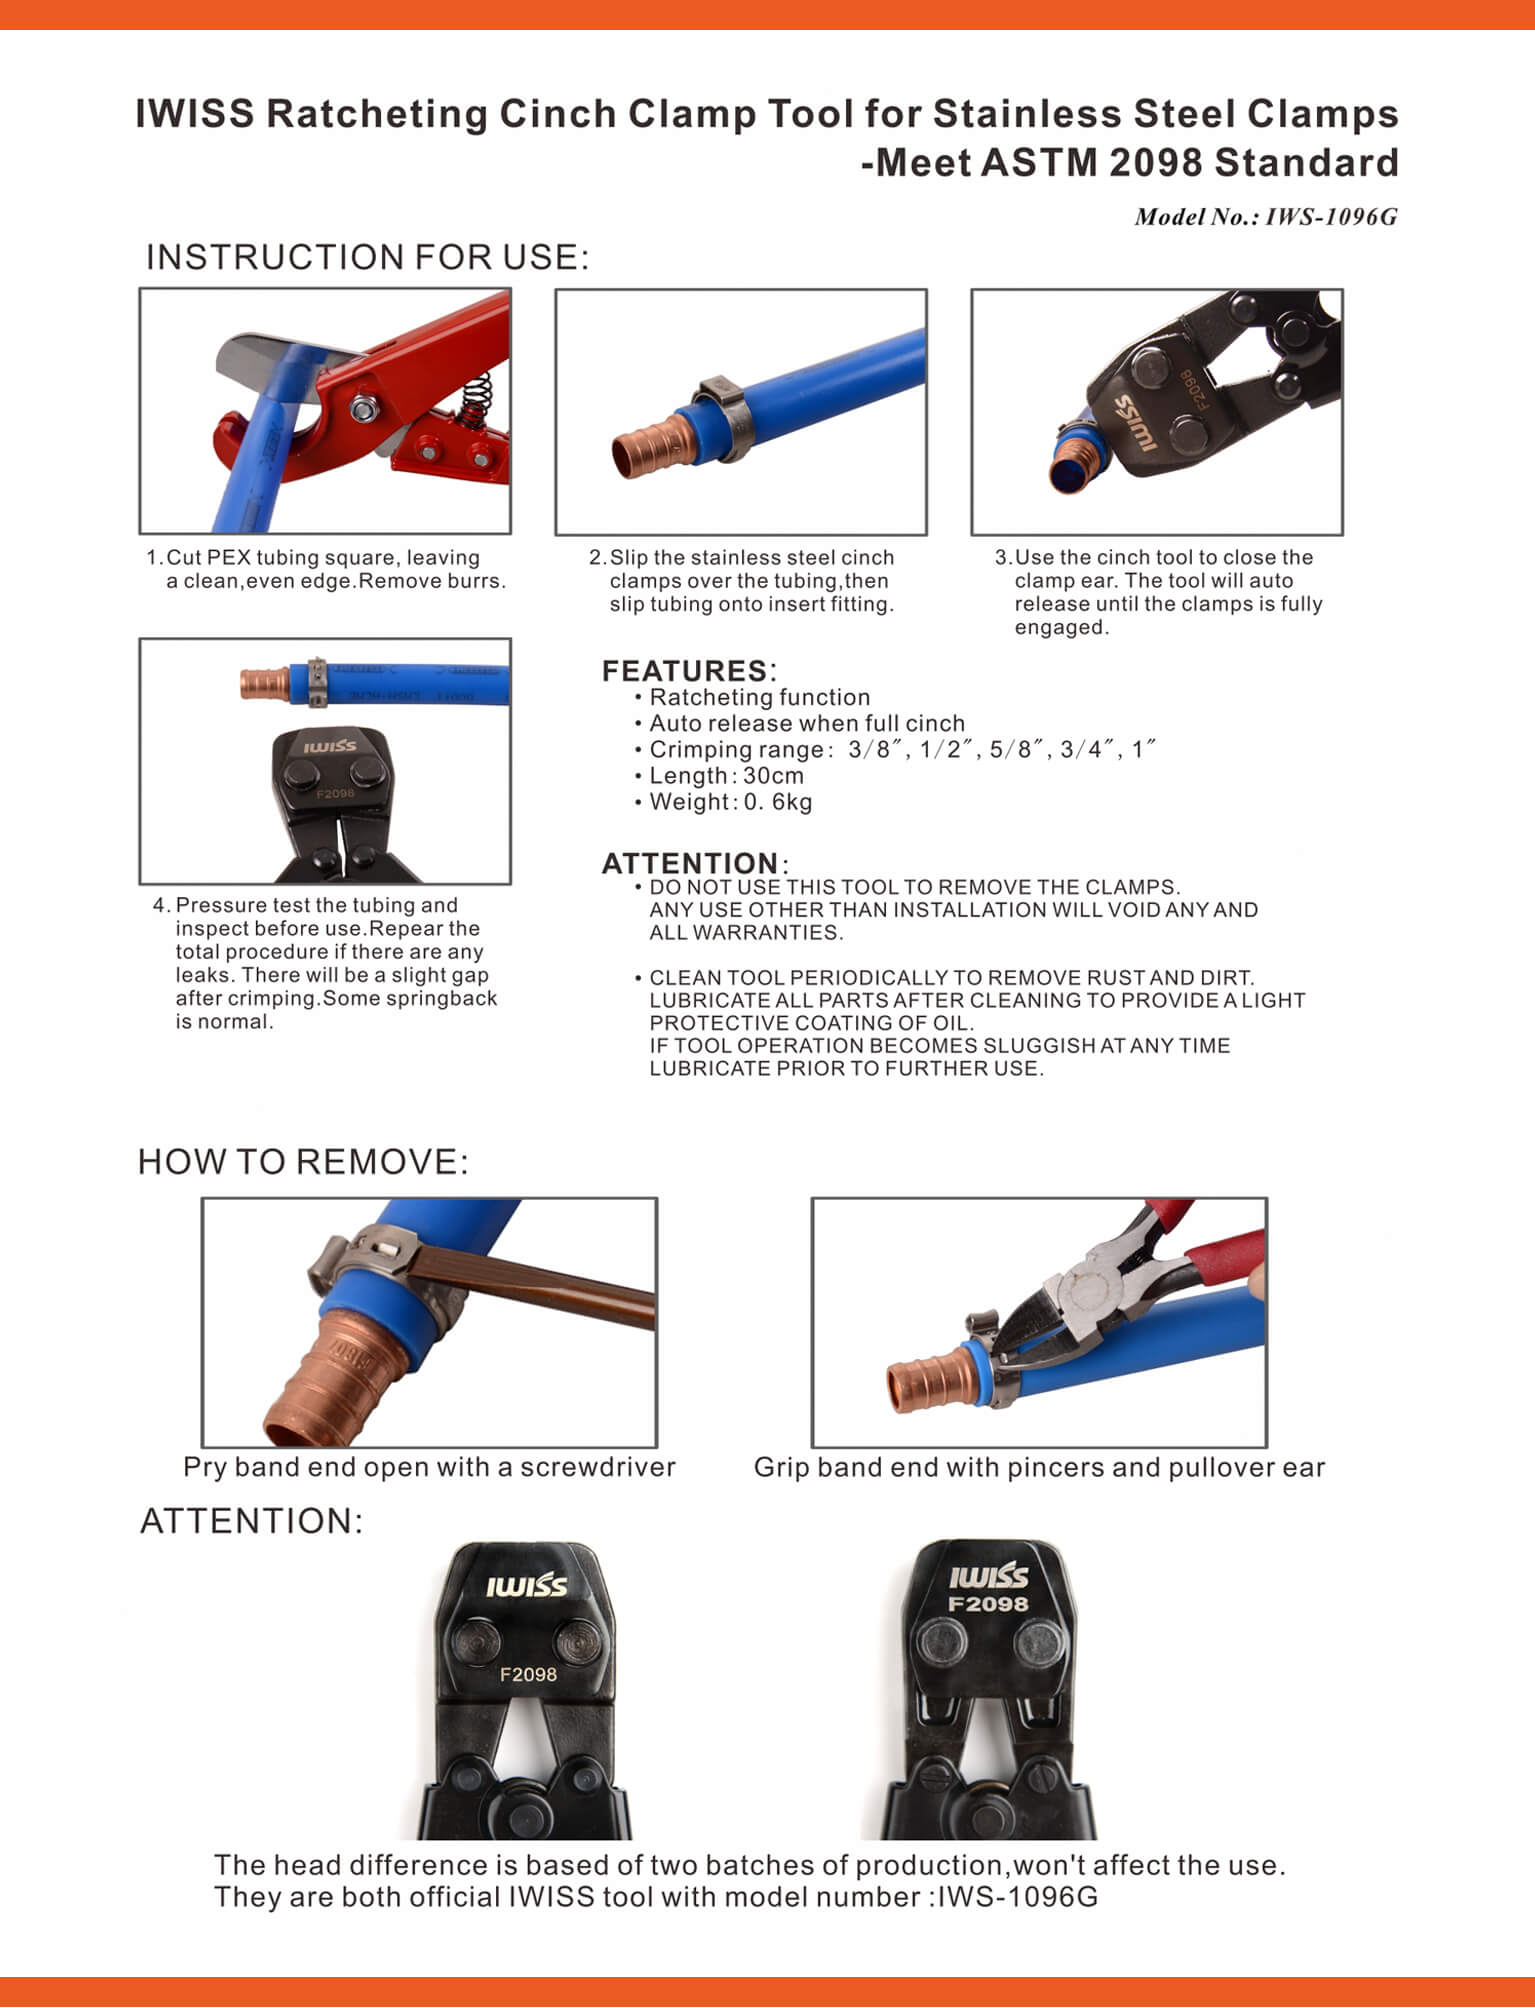 IWISS KG-1096 Retcheting Cinch Clamp Tool For Stainless Steel Clamps